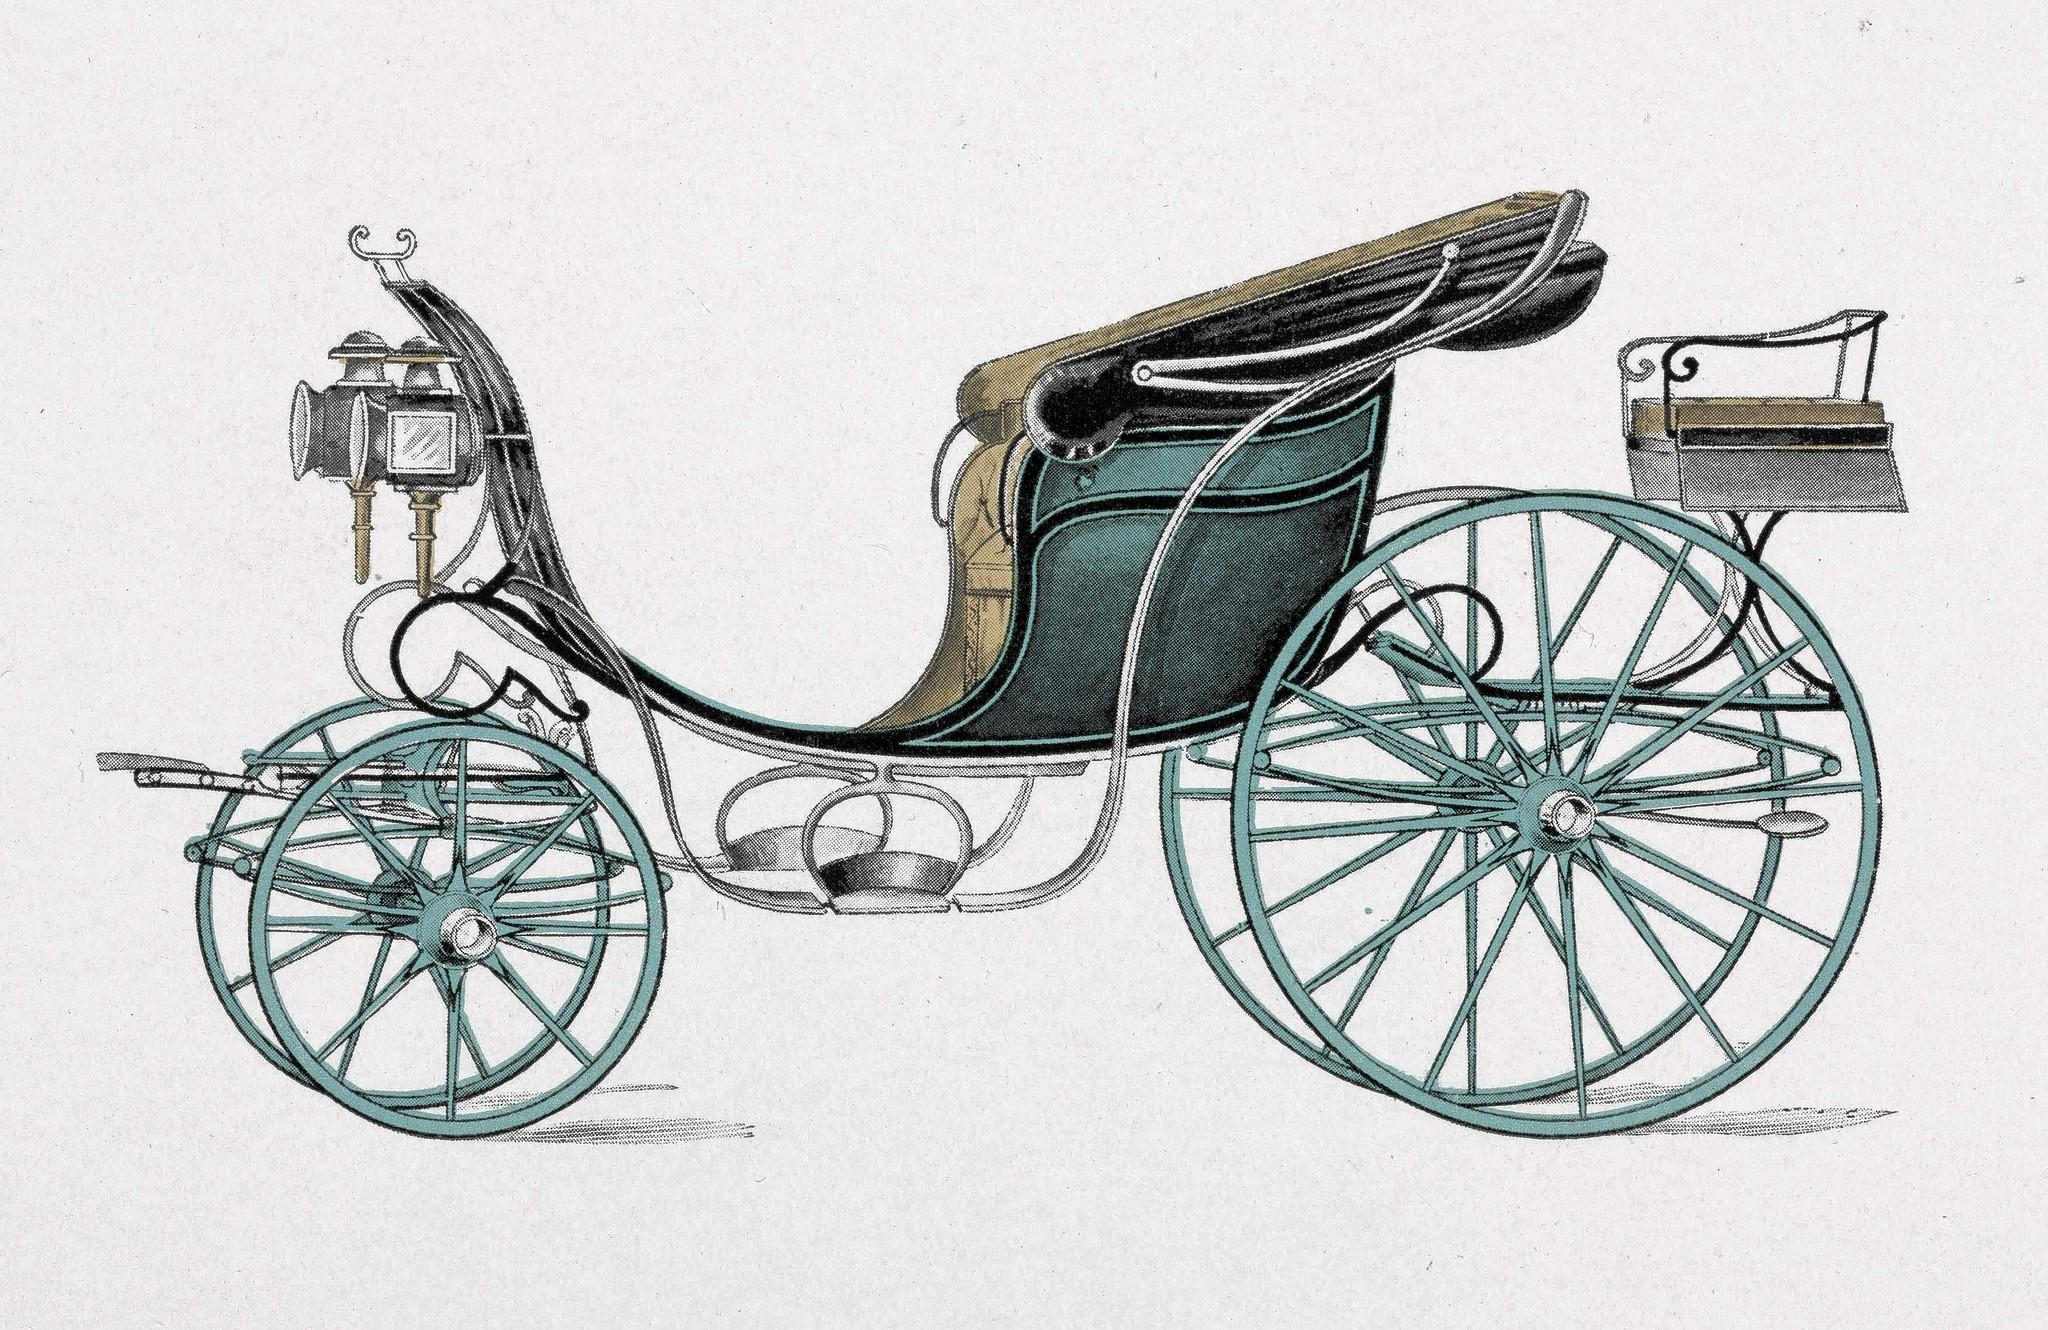 A phaeton was a was a carriage with or without a cloth canopy. This one is from 1906.